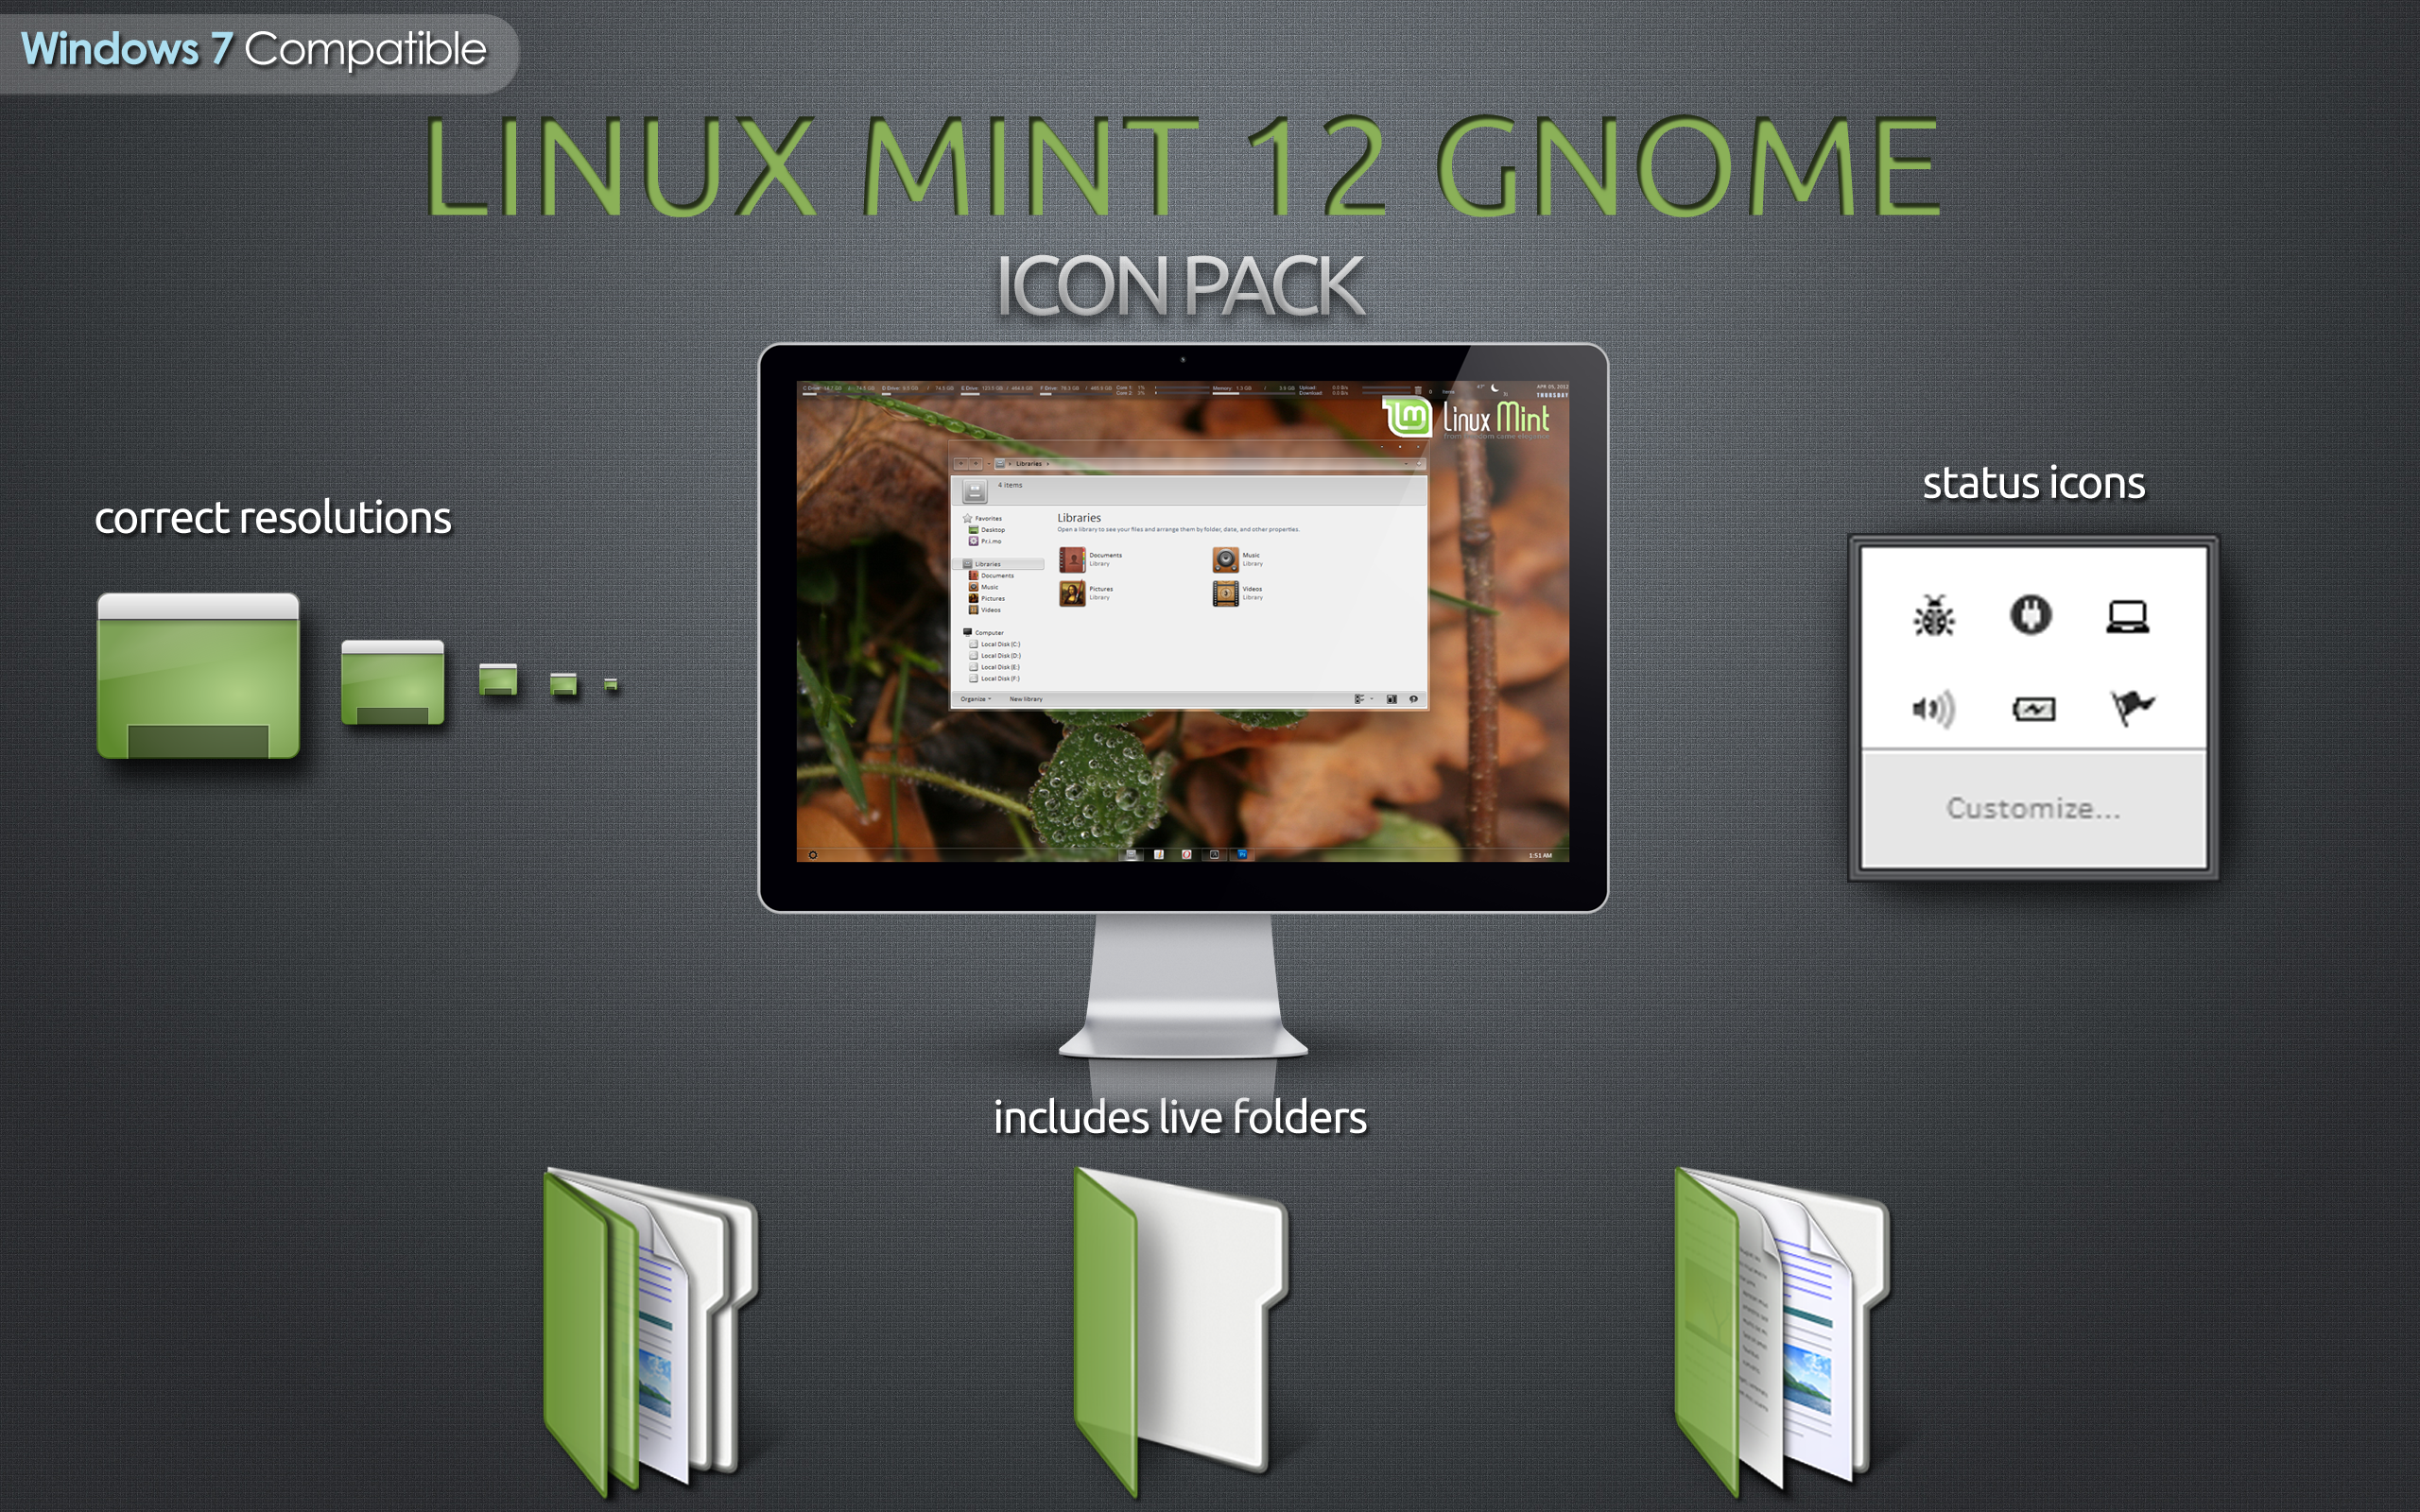 Linux Mint 12 Gnome Icon Pack for Windows 7 by RudeBoySes